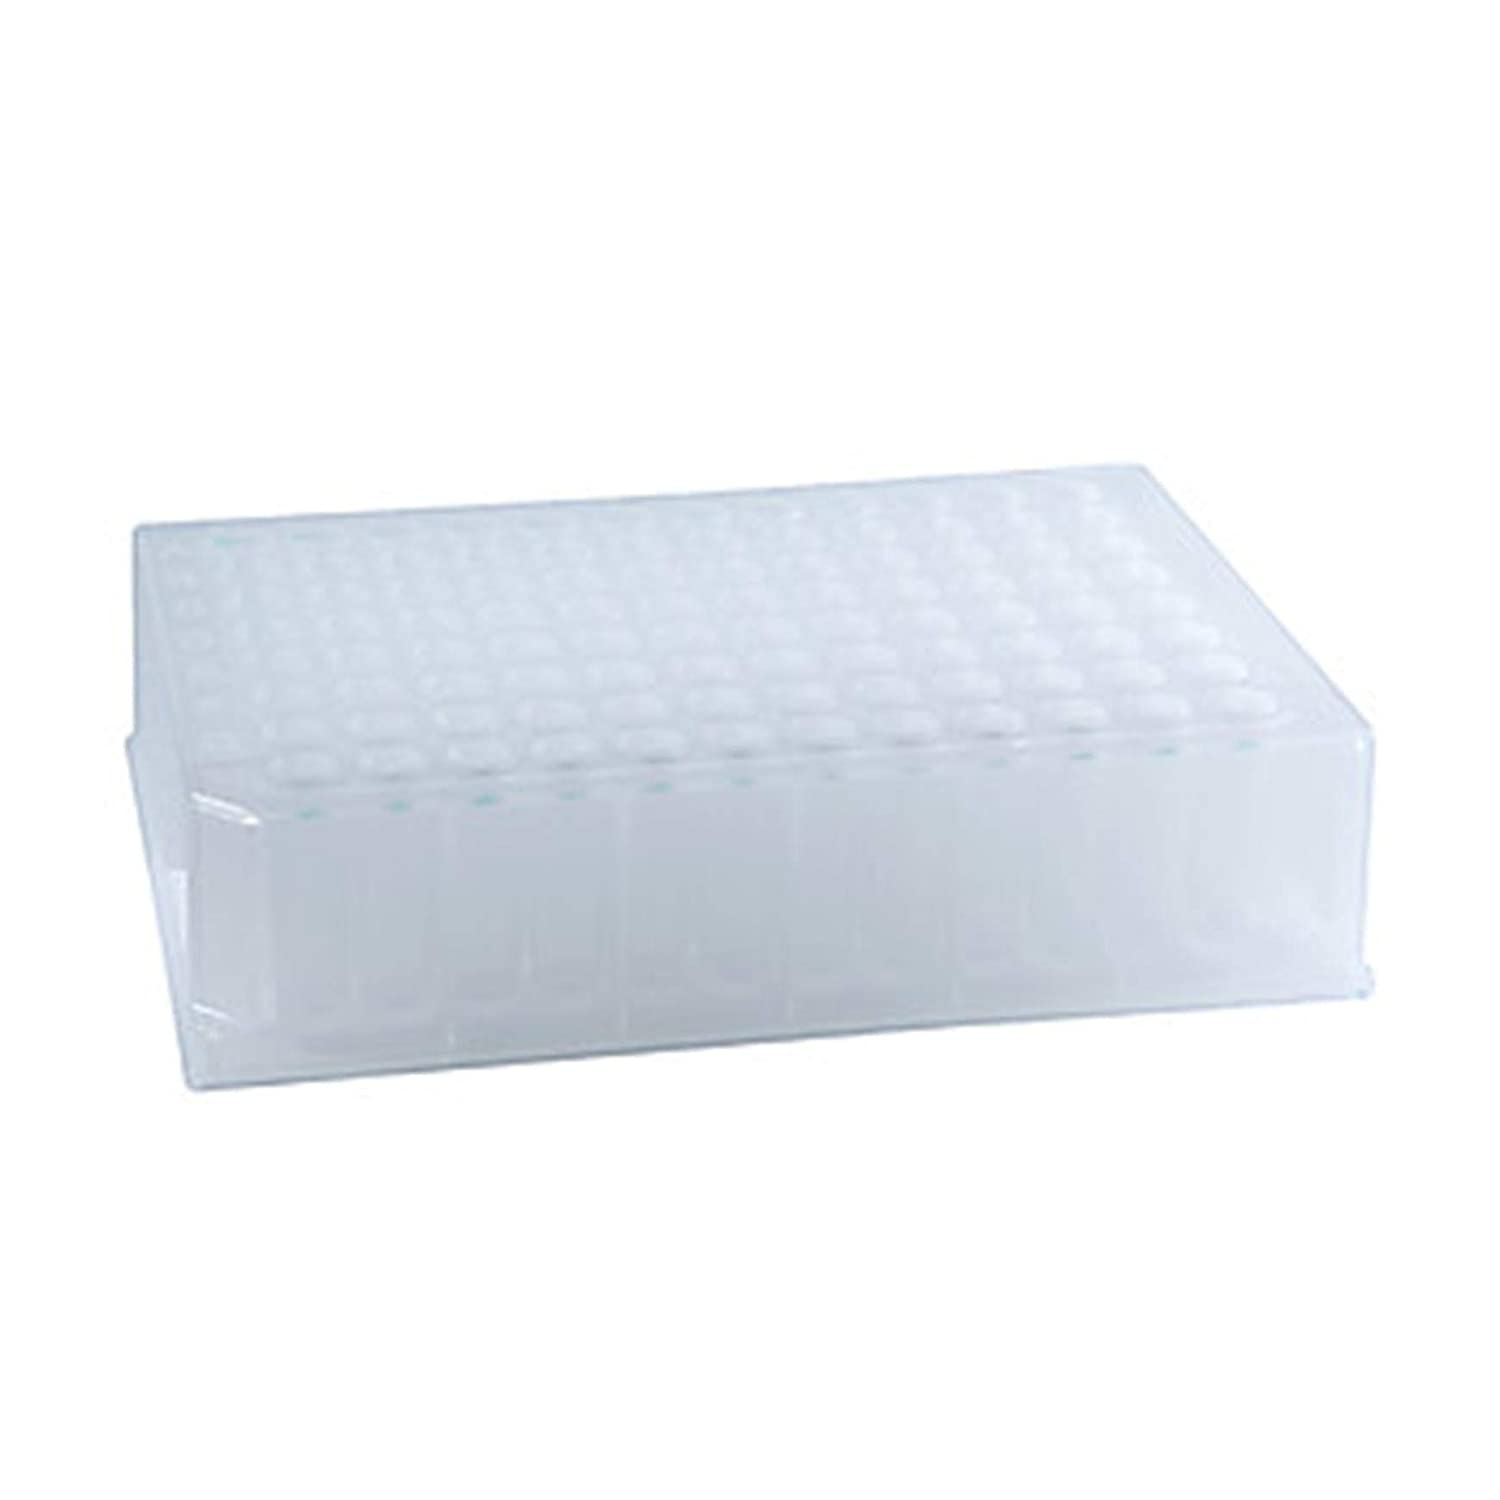 Microliter 07-2100-B µL-Plates Medium Plate Kit, Round Well with Round Bottom with Lid, Polypropylene, BµLk, 500µL (Pack of 10)